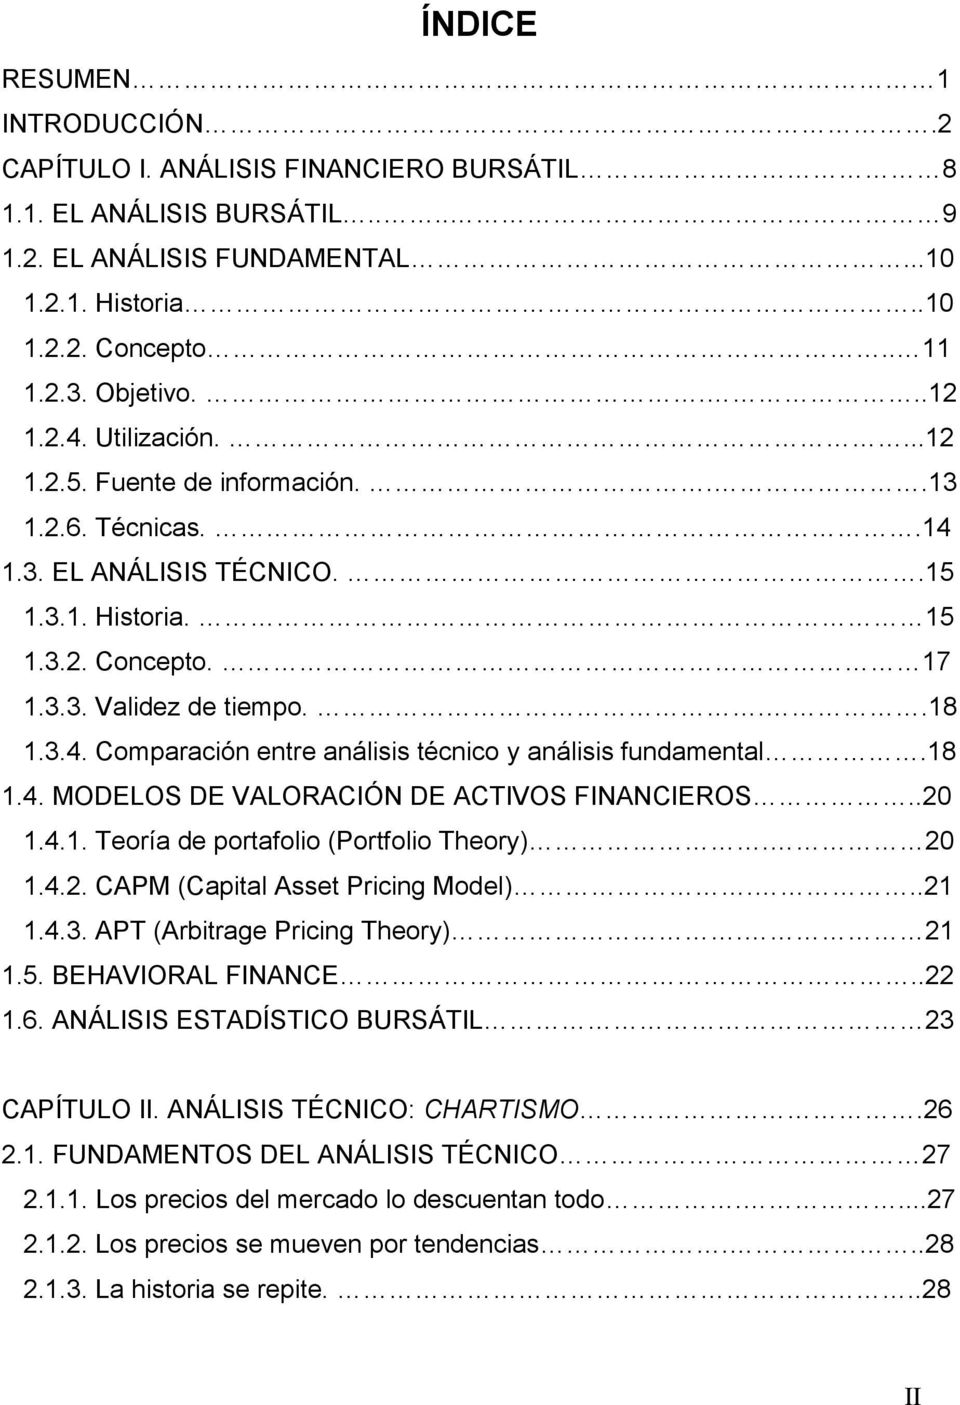 18 1.4. MODELOS DE VALORACIÓN DE ACTIVOS FINANCIEROS..20 1.4.1. Teoría de portafolio (Portfolio Theory). 20 1.4.2. CAPM (Capital Asset Pricing Model)...21 1.4.3. APT (Arbitrage Pricing Theory). 21 1.